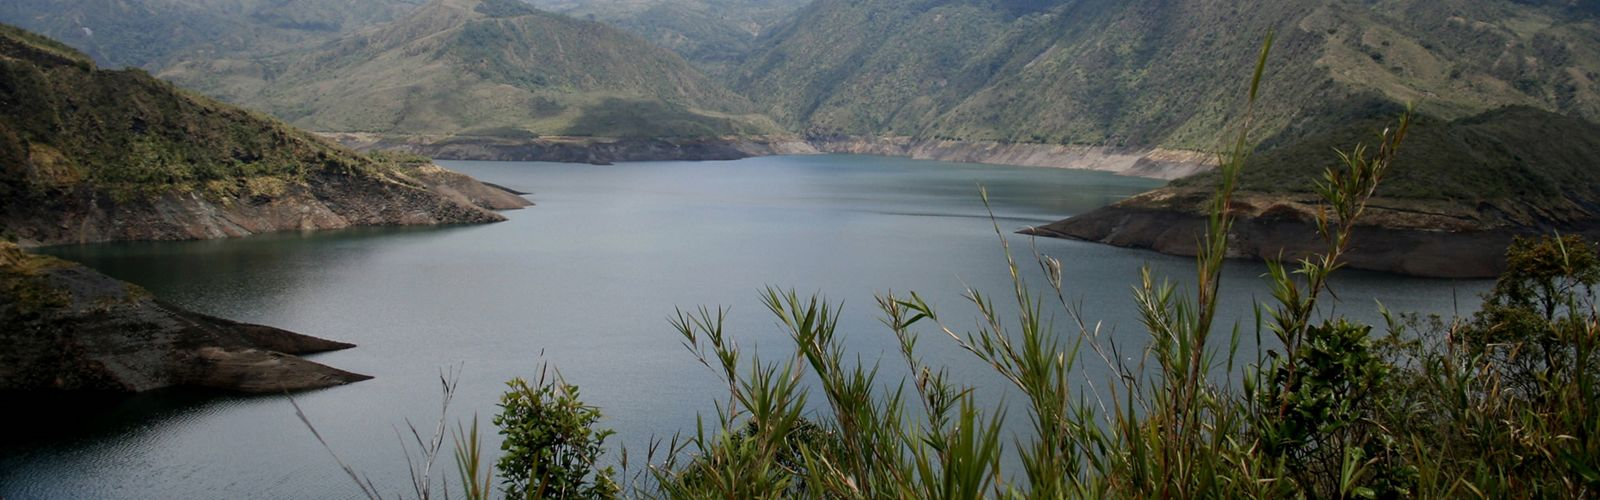 Water reservoir at Chingaza National Park, which is part of the Parks in Peril program. The Nature Conservancy is working with Fundaci?n Natura and other local partners to develop a site conservation plan, increase scientific knowledge about the park, promote environmental education in surrounding communitites and establish long-term, sustainable funding sources for the park.